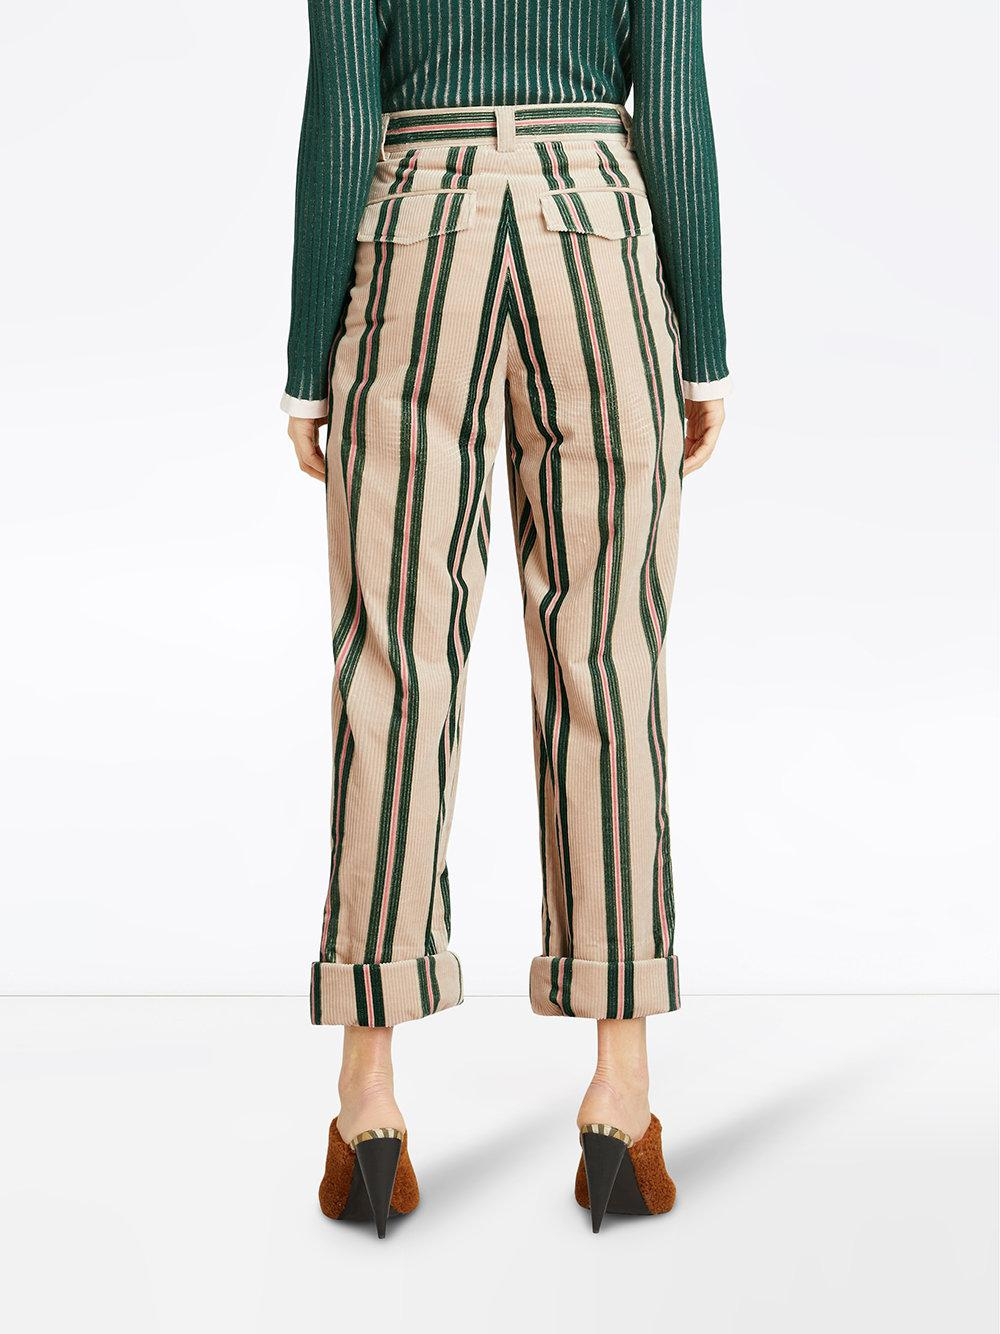 692214ac55a burberry-Nude-Neutrals-Roll-up-Cuff-Striped-Corduroy-Trousers.jpeg